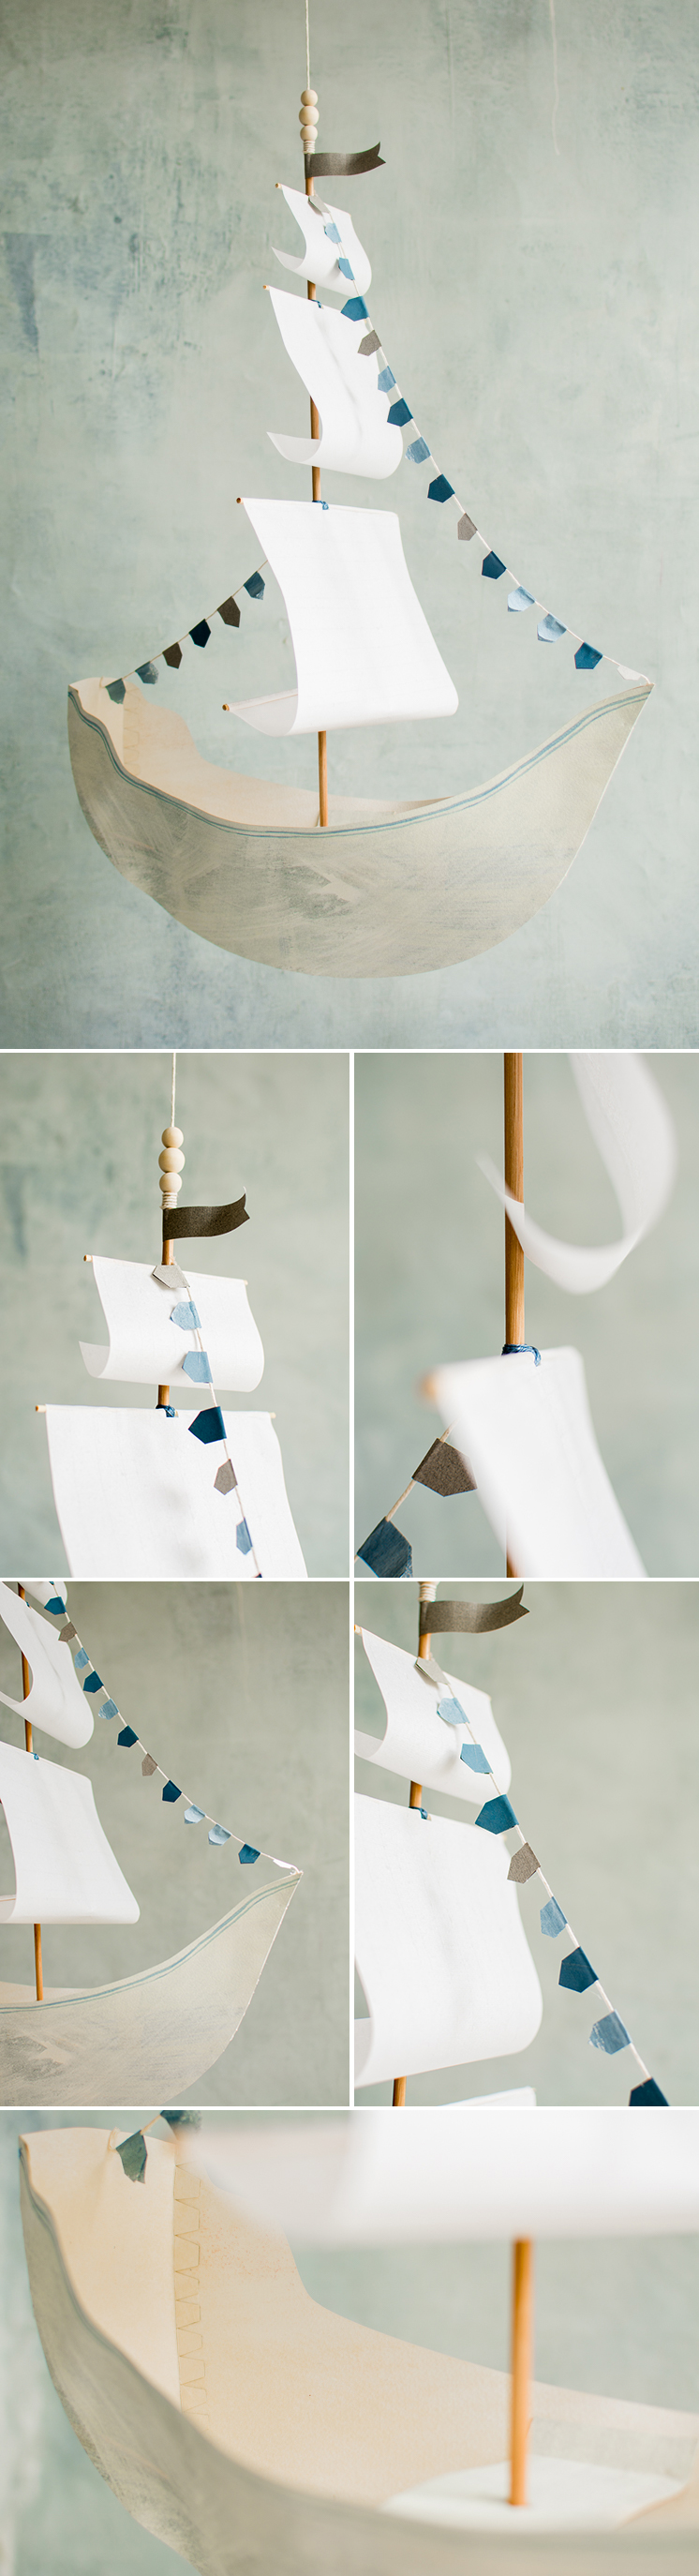 Make this paper ship using the Cricut explore